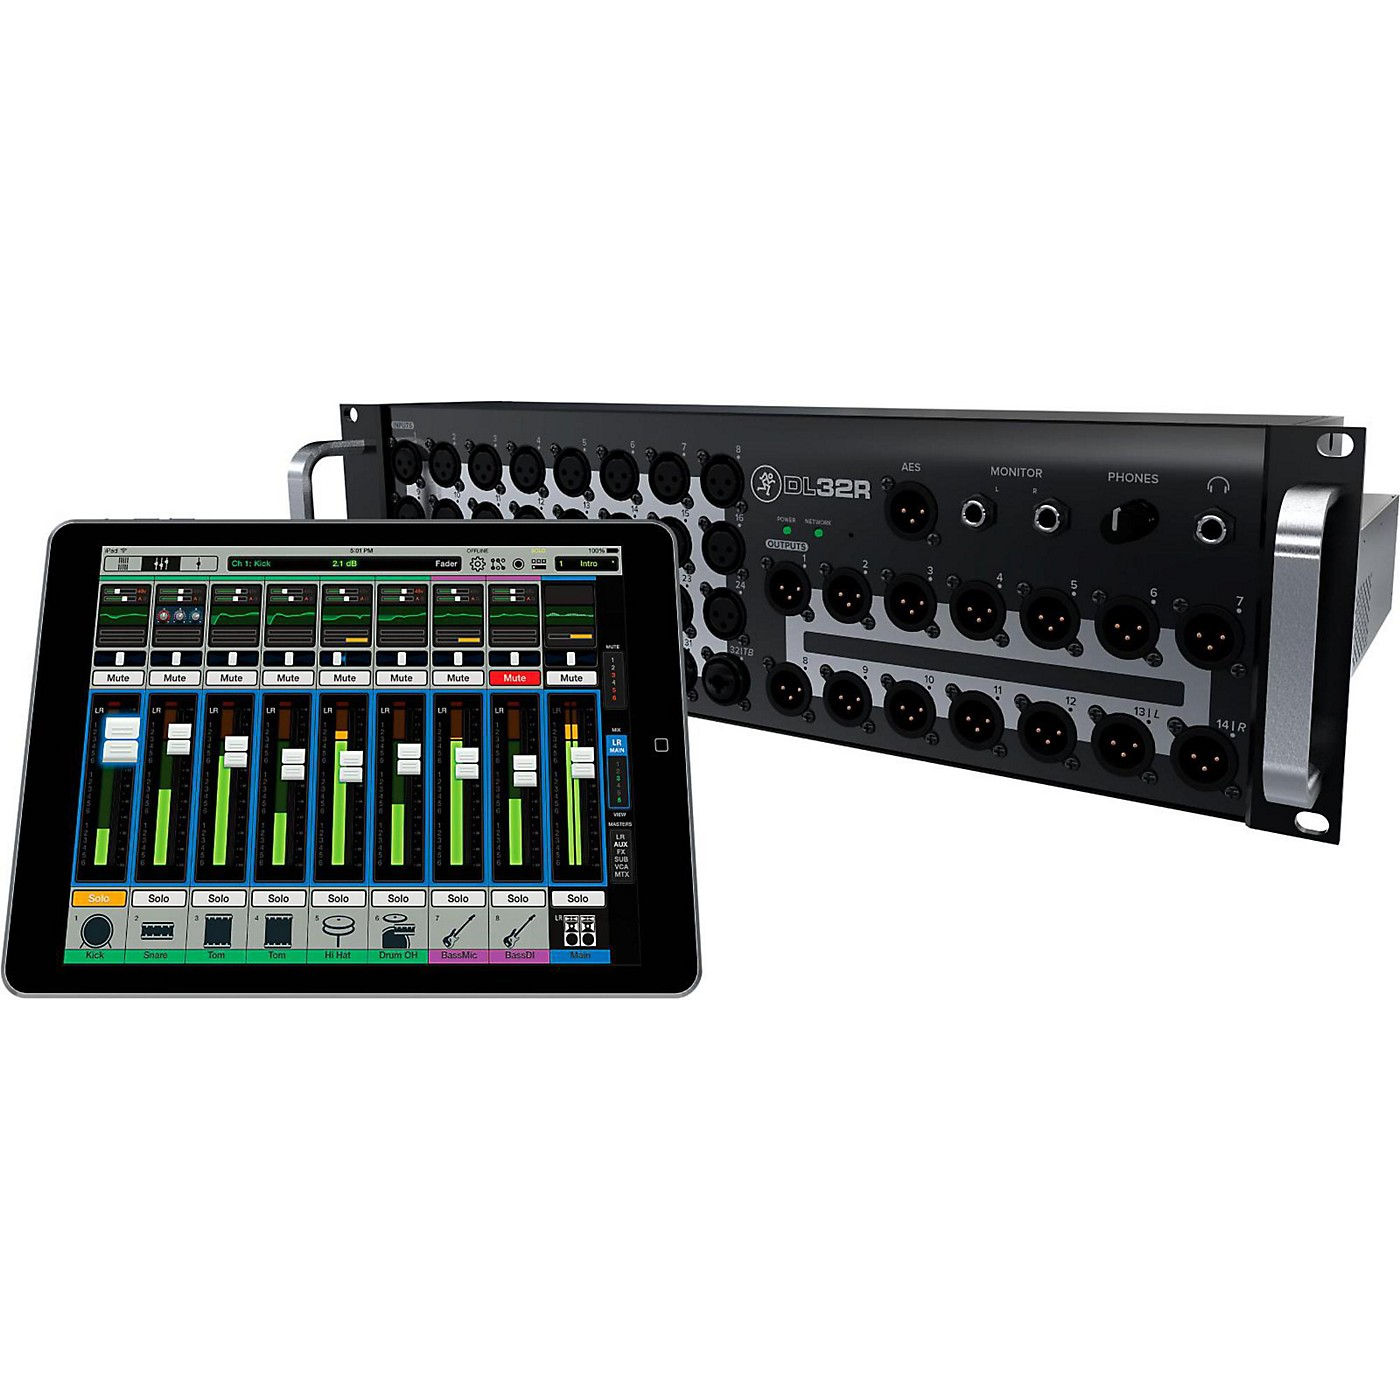 Mackie DL32R 32-Channel Wireless Digital Live Sound Mixer with iPad Control thumbnail